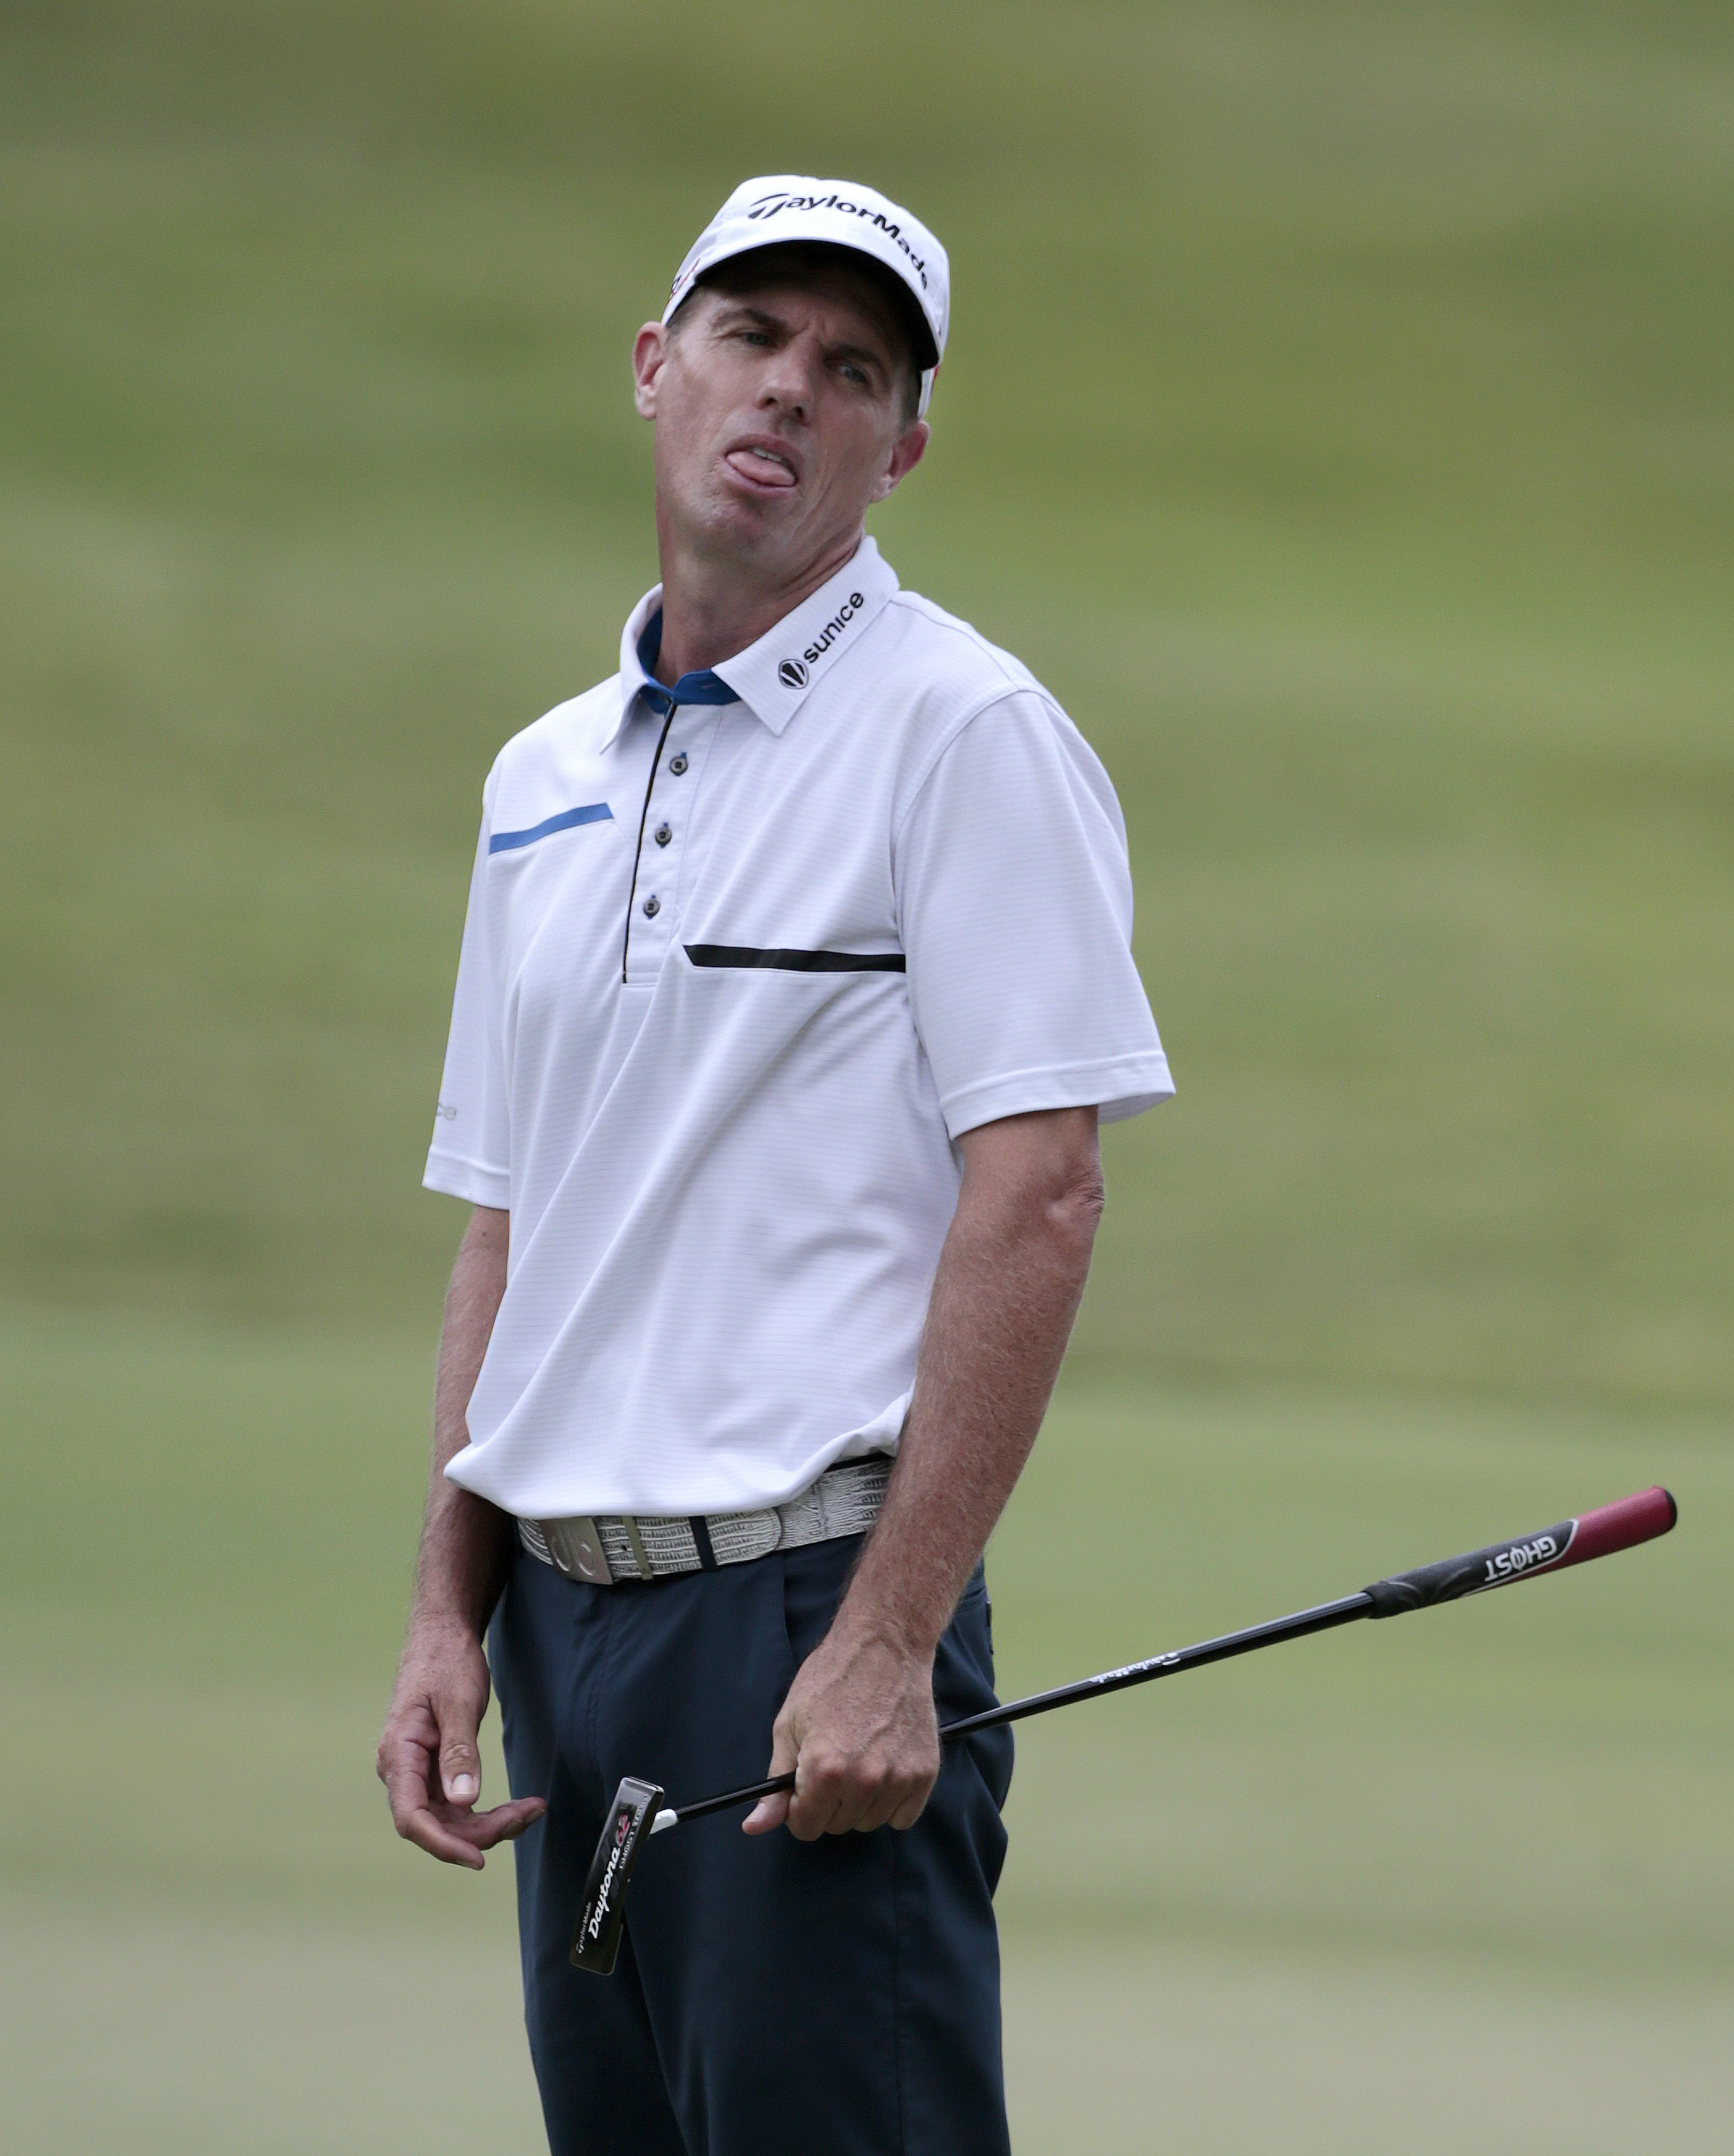 Steven Alker, of New Zealand, watches as his birdie putt attempt misses the hole on the fourth green during the third round of the St. Jude Classic golf tournament Saturday, June 13, 2015, in Memphis, Tenn. (AP Photo/Mark Humphrey)